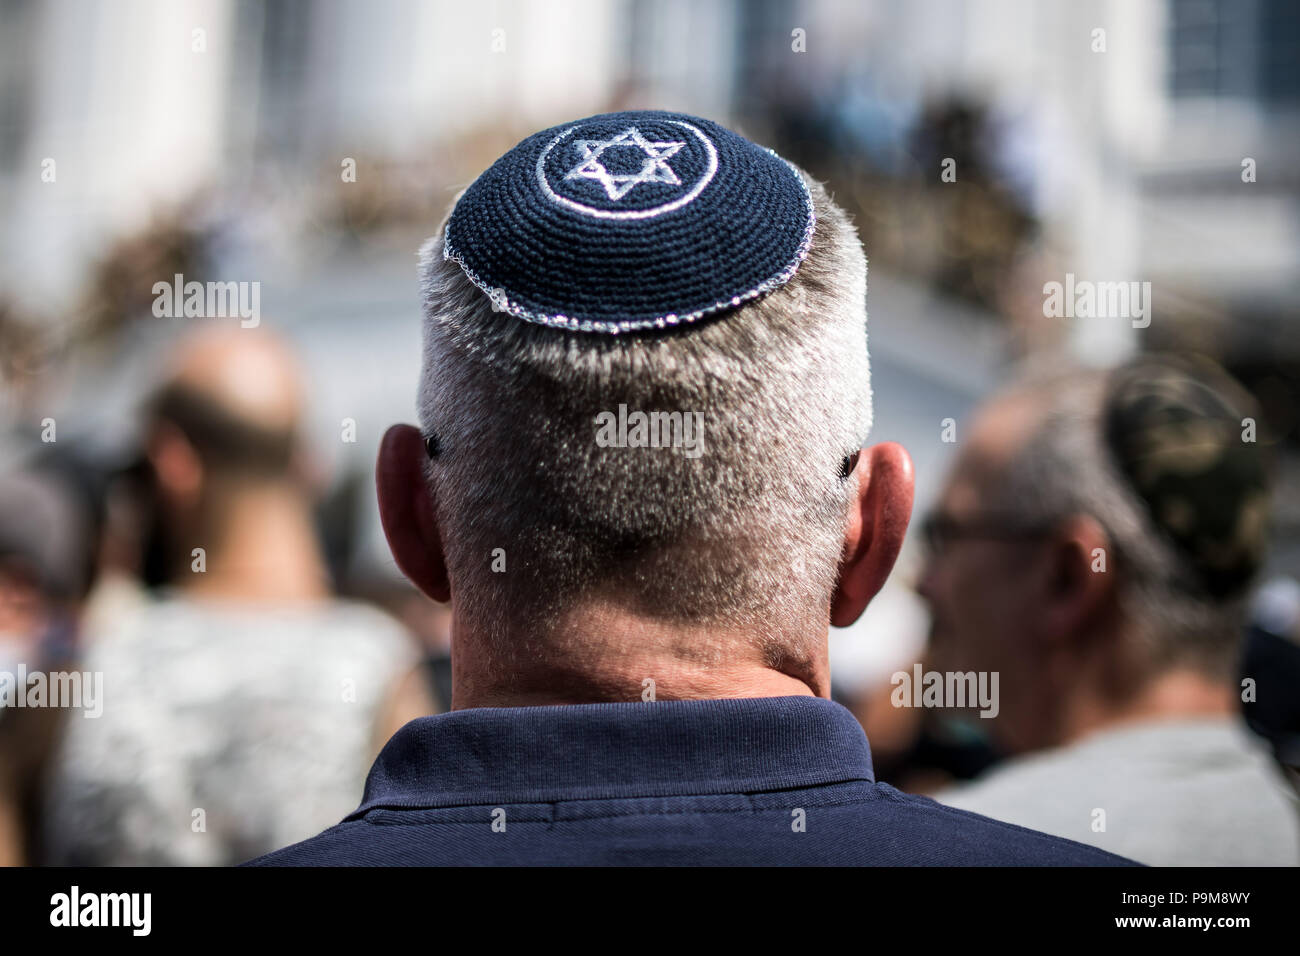 Bonn, Germany. 19th July, 2018. A resident from Bonn demonstrating at the market square with a Kippah on his head. Hundreds of people have demonstrated against anti-semitism. Many of them wore a kippah. Bonn reacted to an attack on an Israeli professor with the 'Kippah day'. The alarmed police mistakenly thought the academic was the offender and overpowered him. Credit: Federico Gambarini/dpa/Alamy Live News - Stock Image